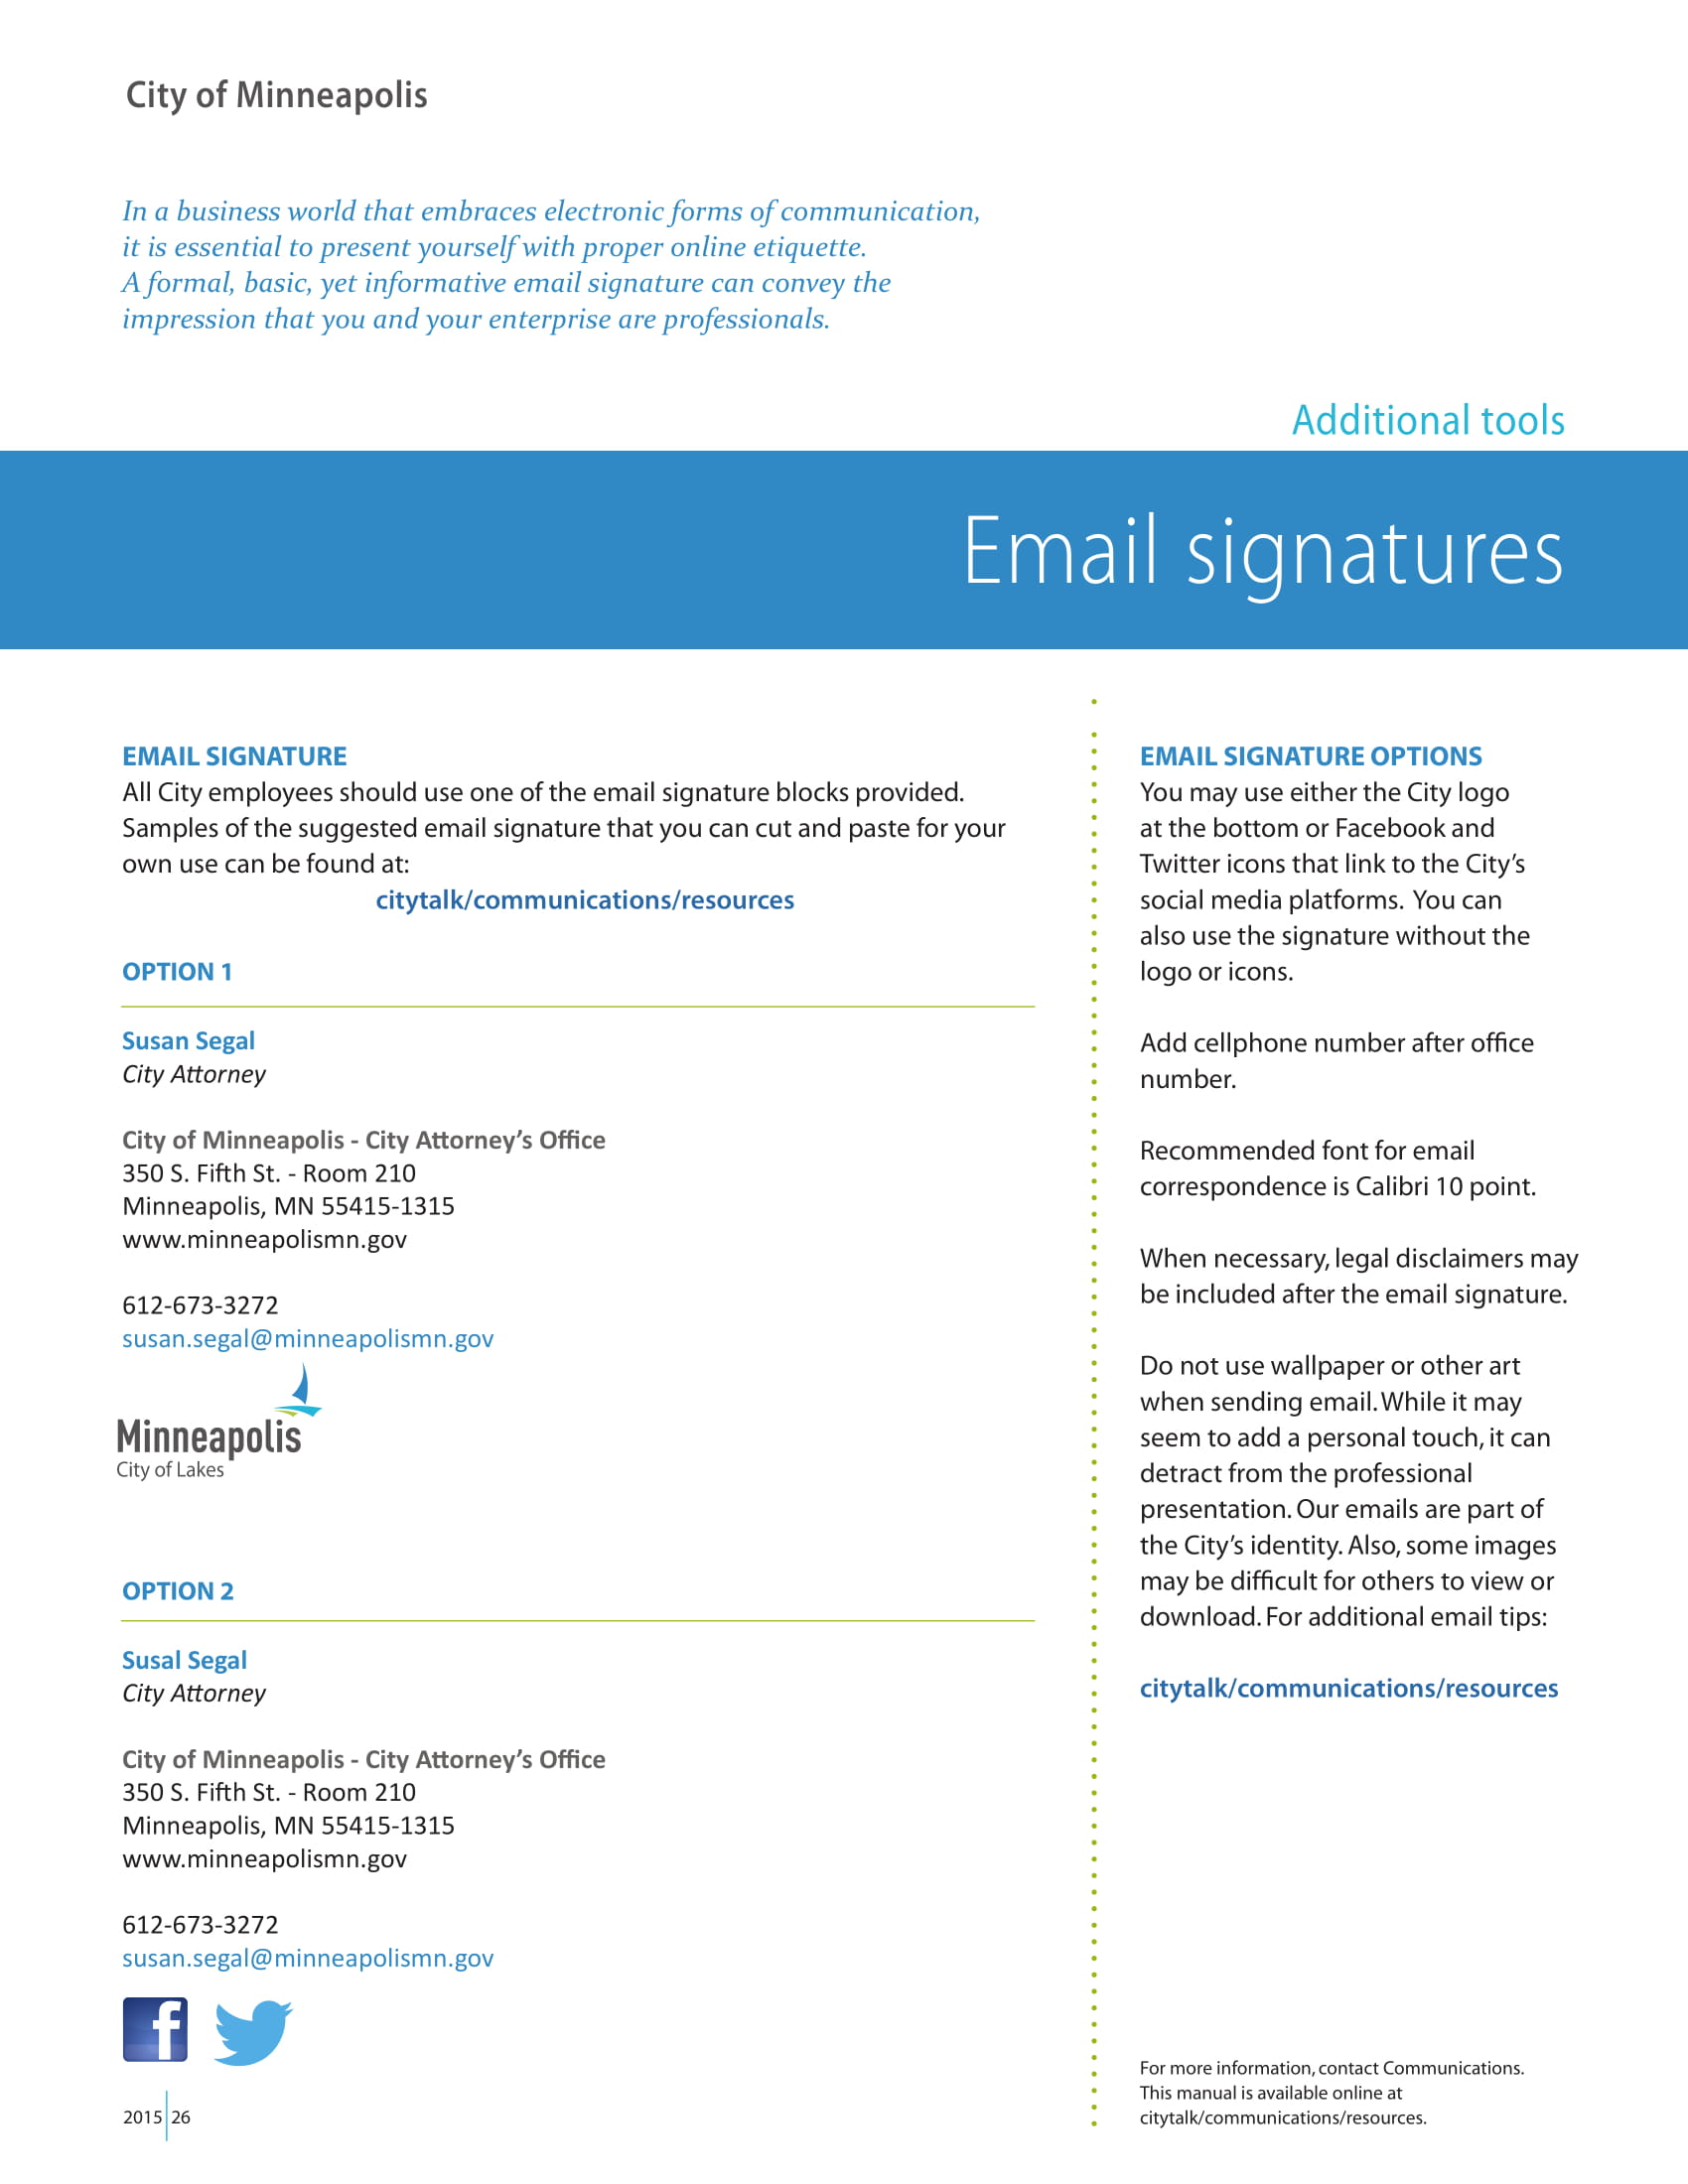 email signature block format example 1